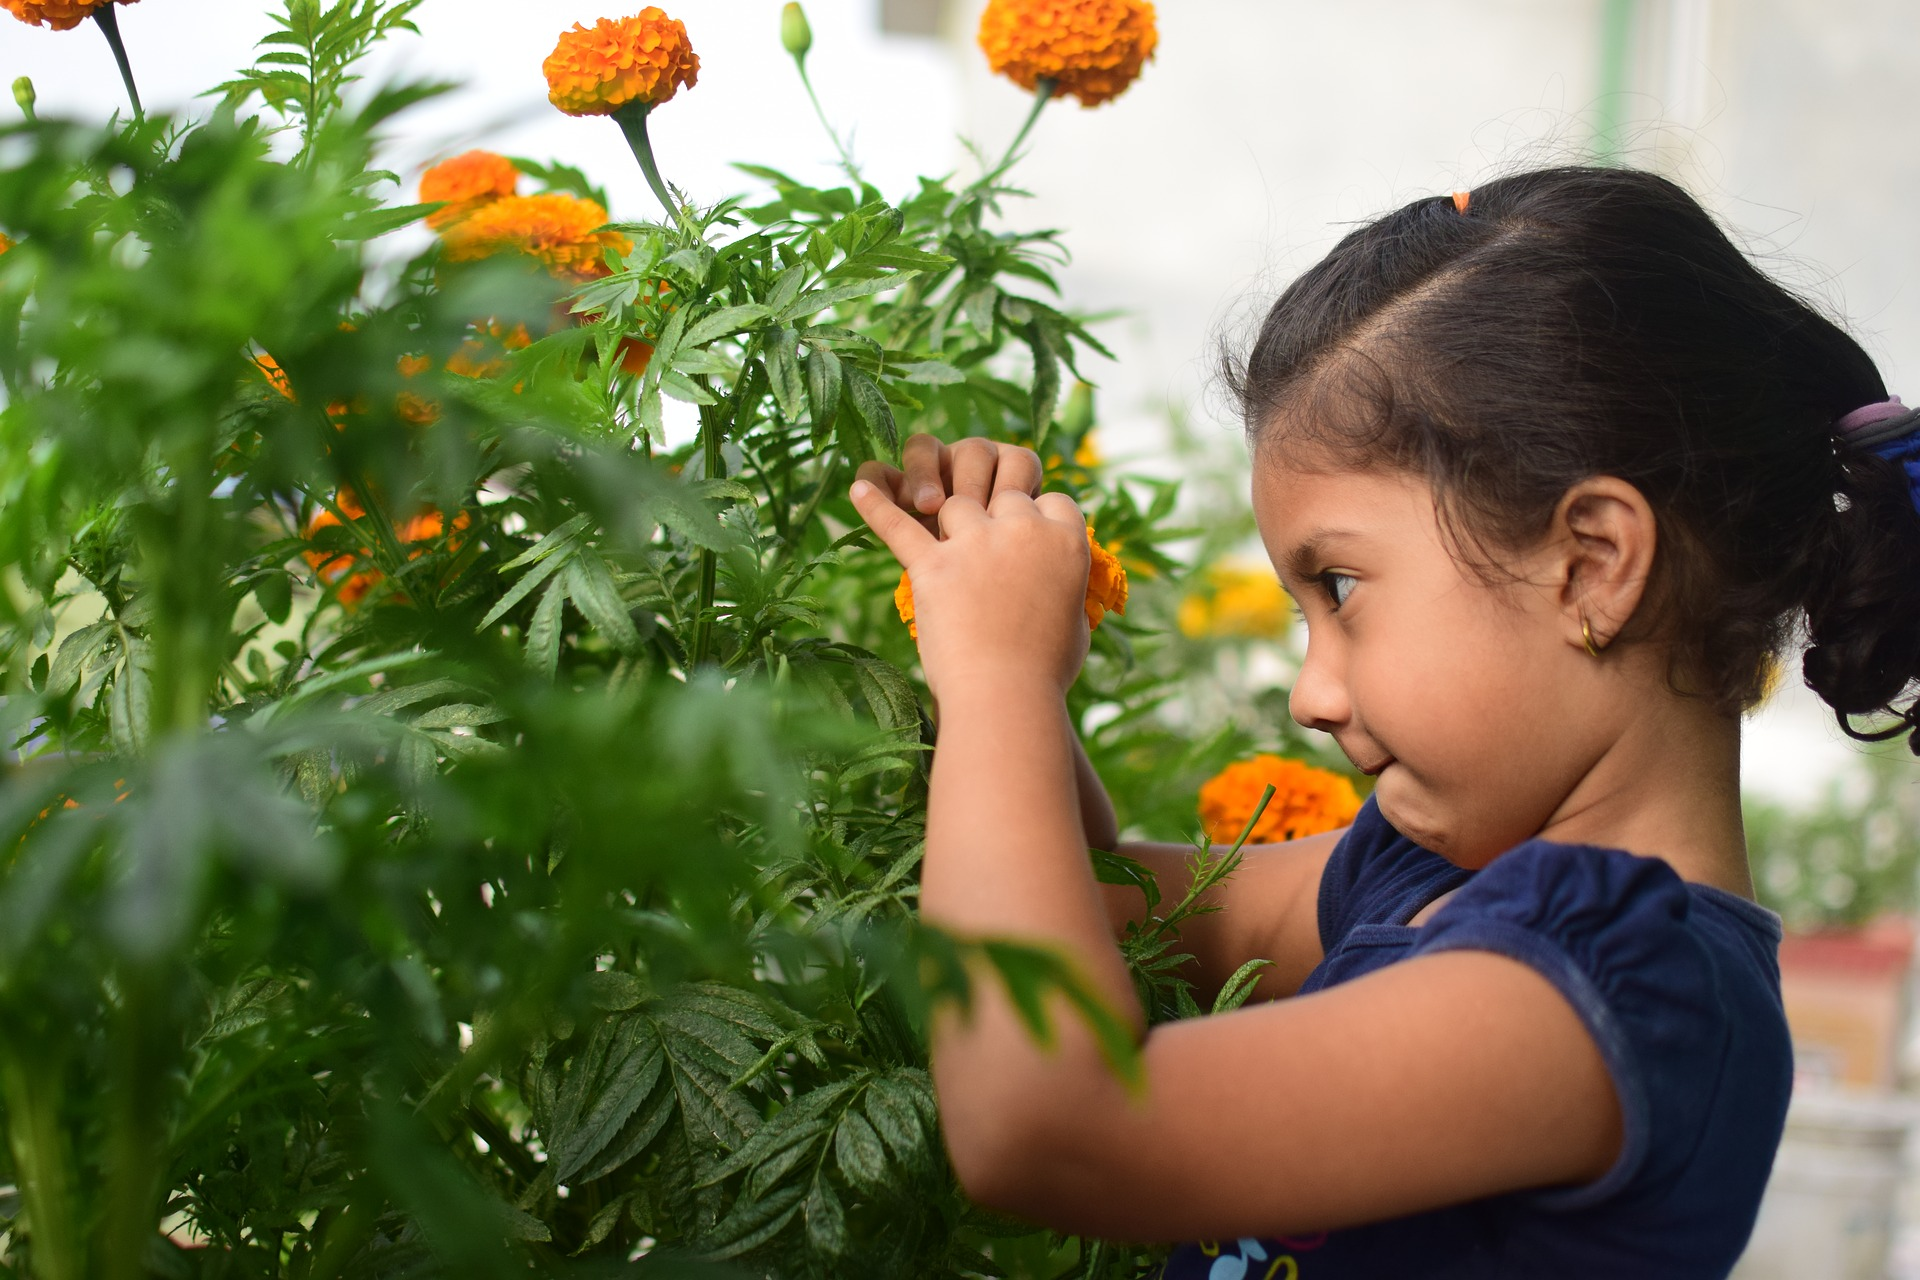 Gardening with kids makes them appreciate patience